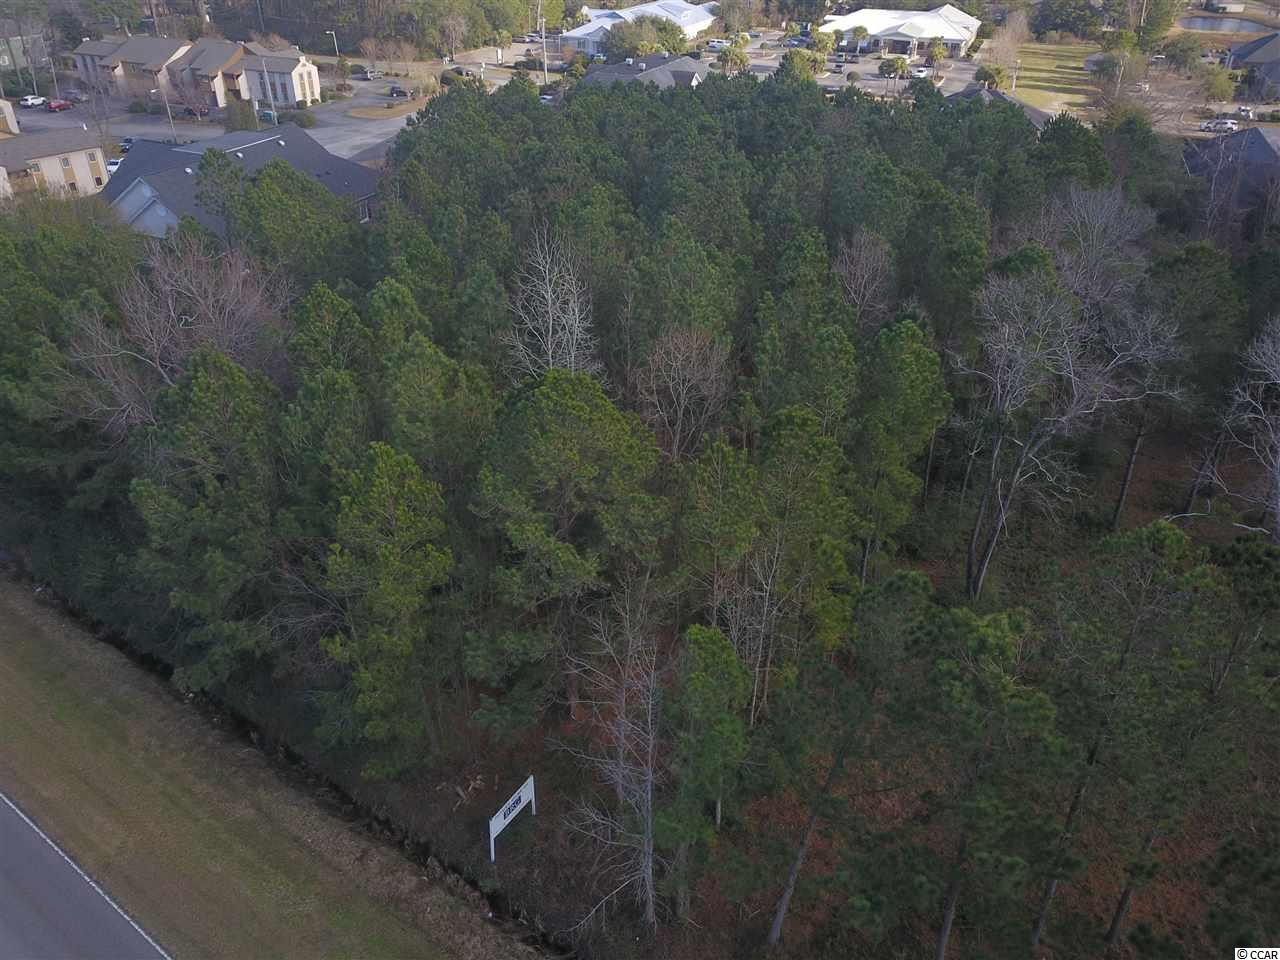 Commercial lot in the heart of Myrtle Beach with almost 150' of frontage on Highway 17 Bypass.  Great location with a high traffic count between 38th Ave N and 48th Ave N.